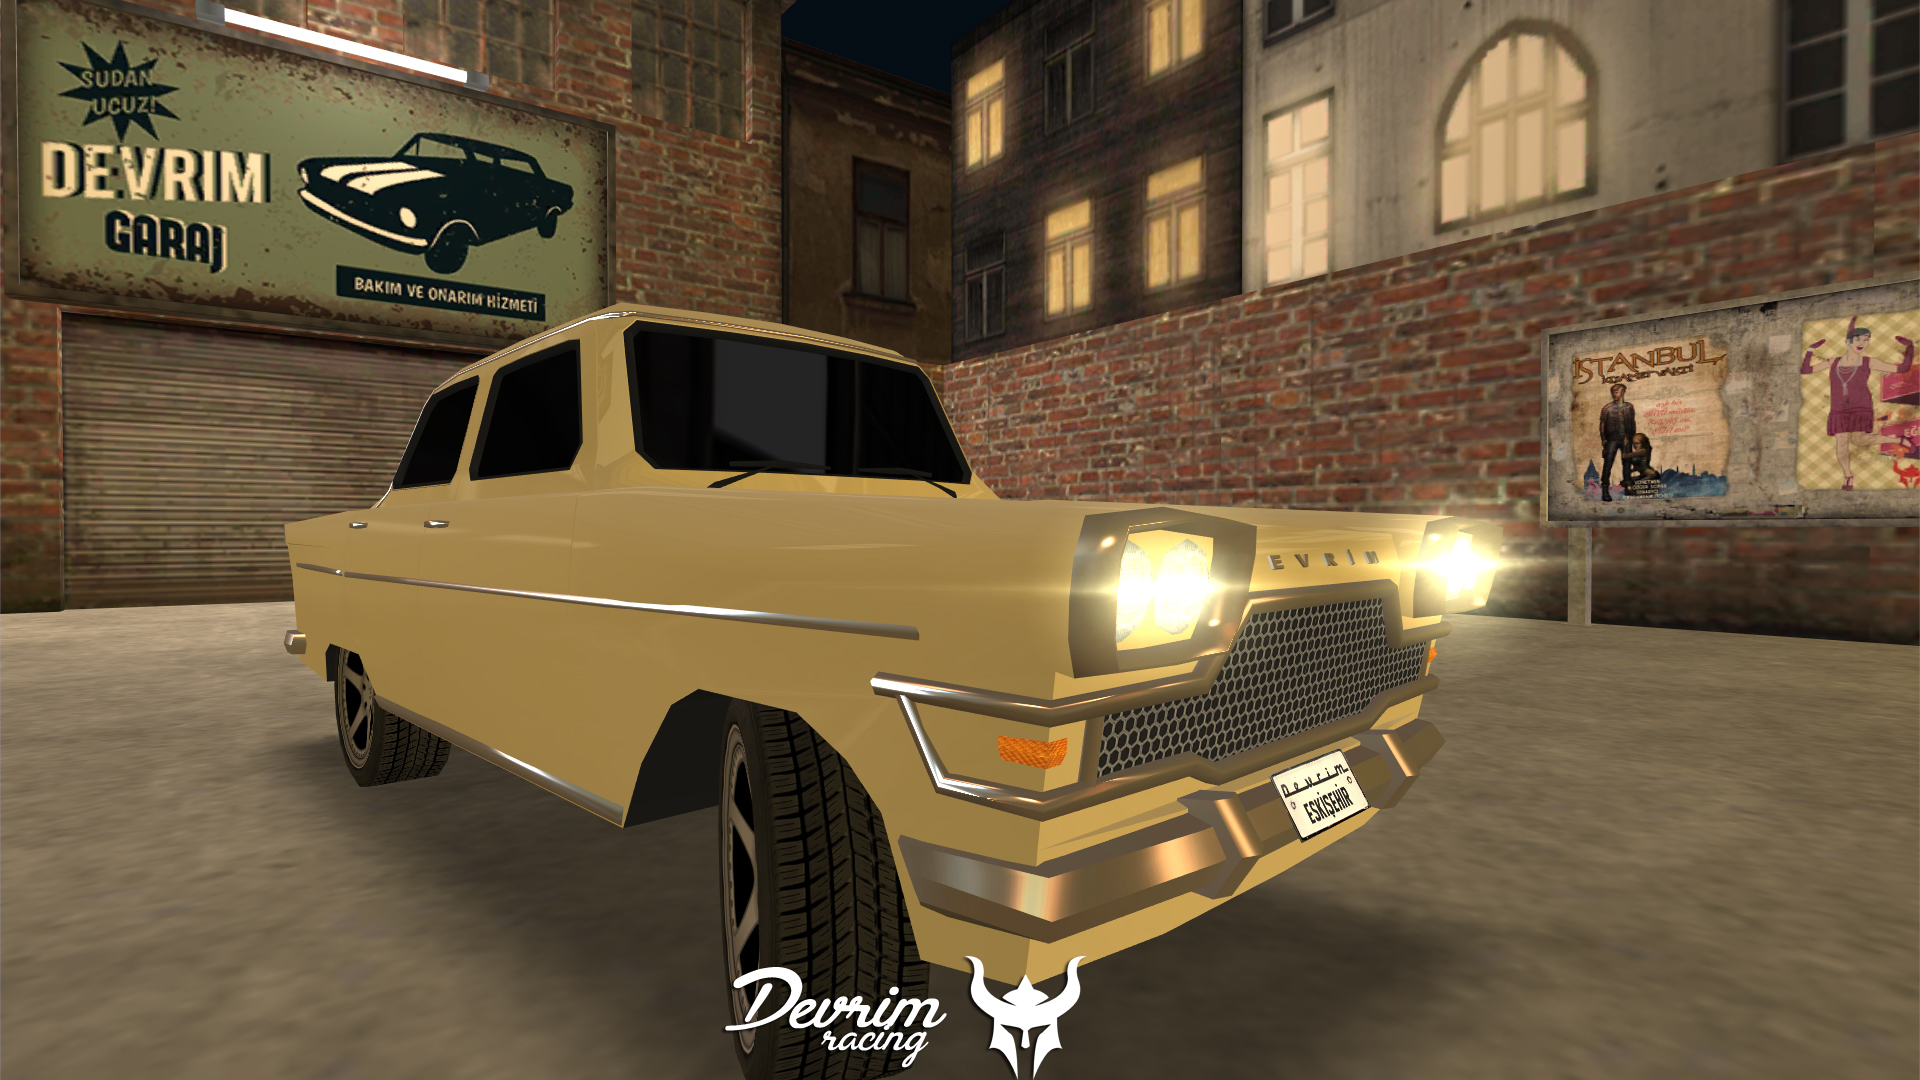 devrim racing screenshot